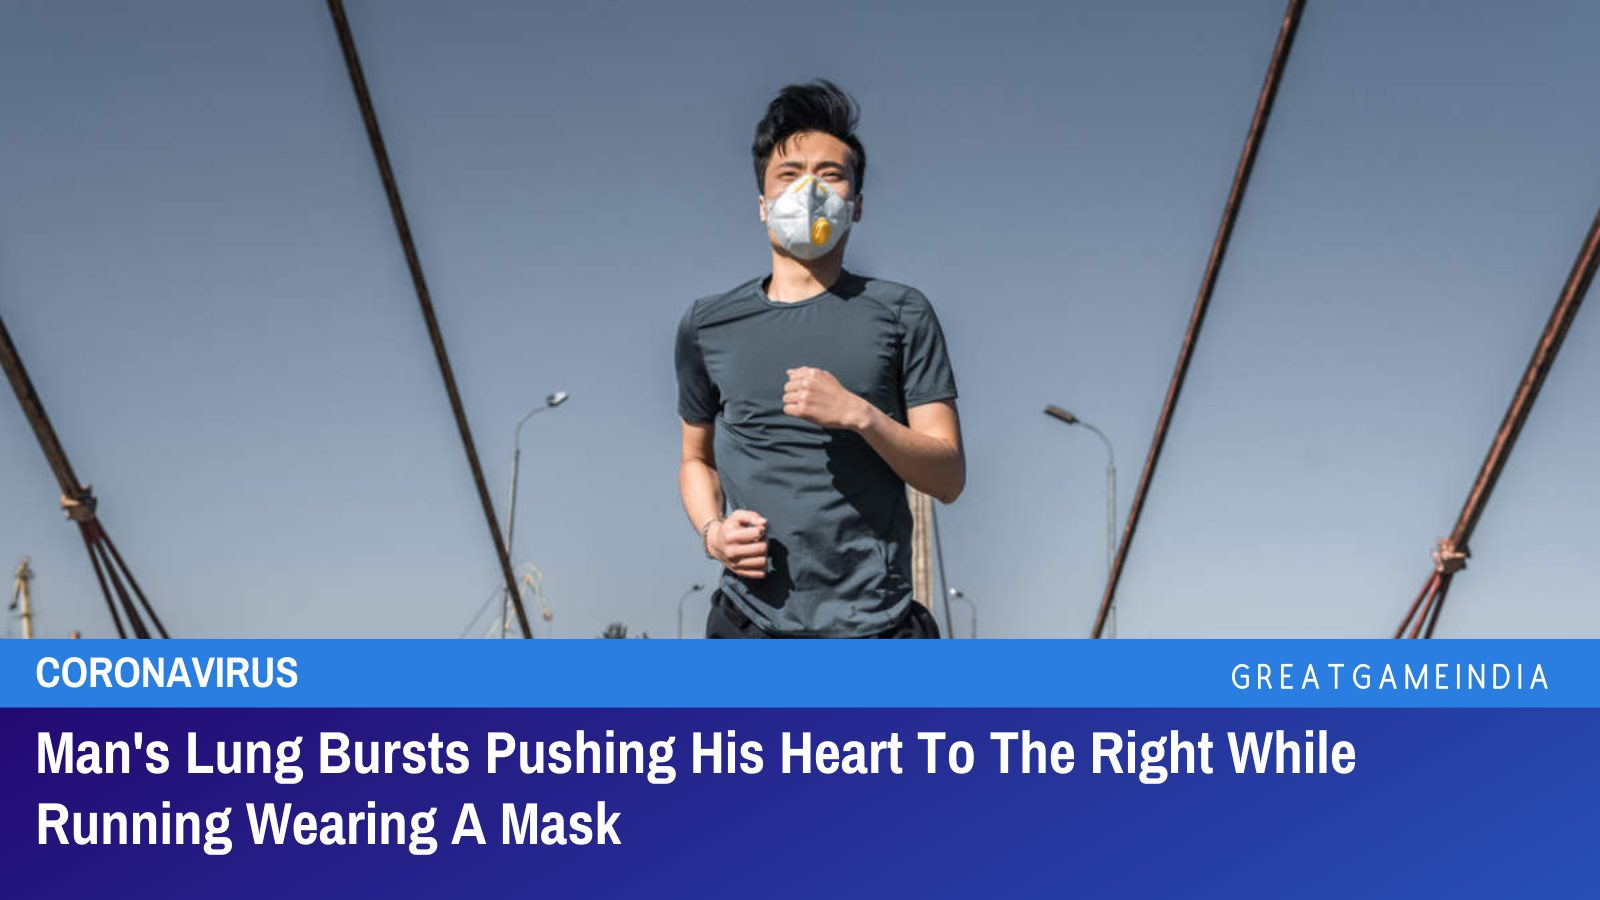 Man's Lung Bursts Pushing His Heart To The Right While Running Wearing A Mask